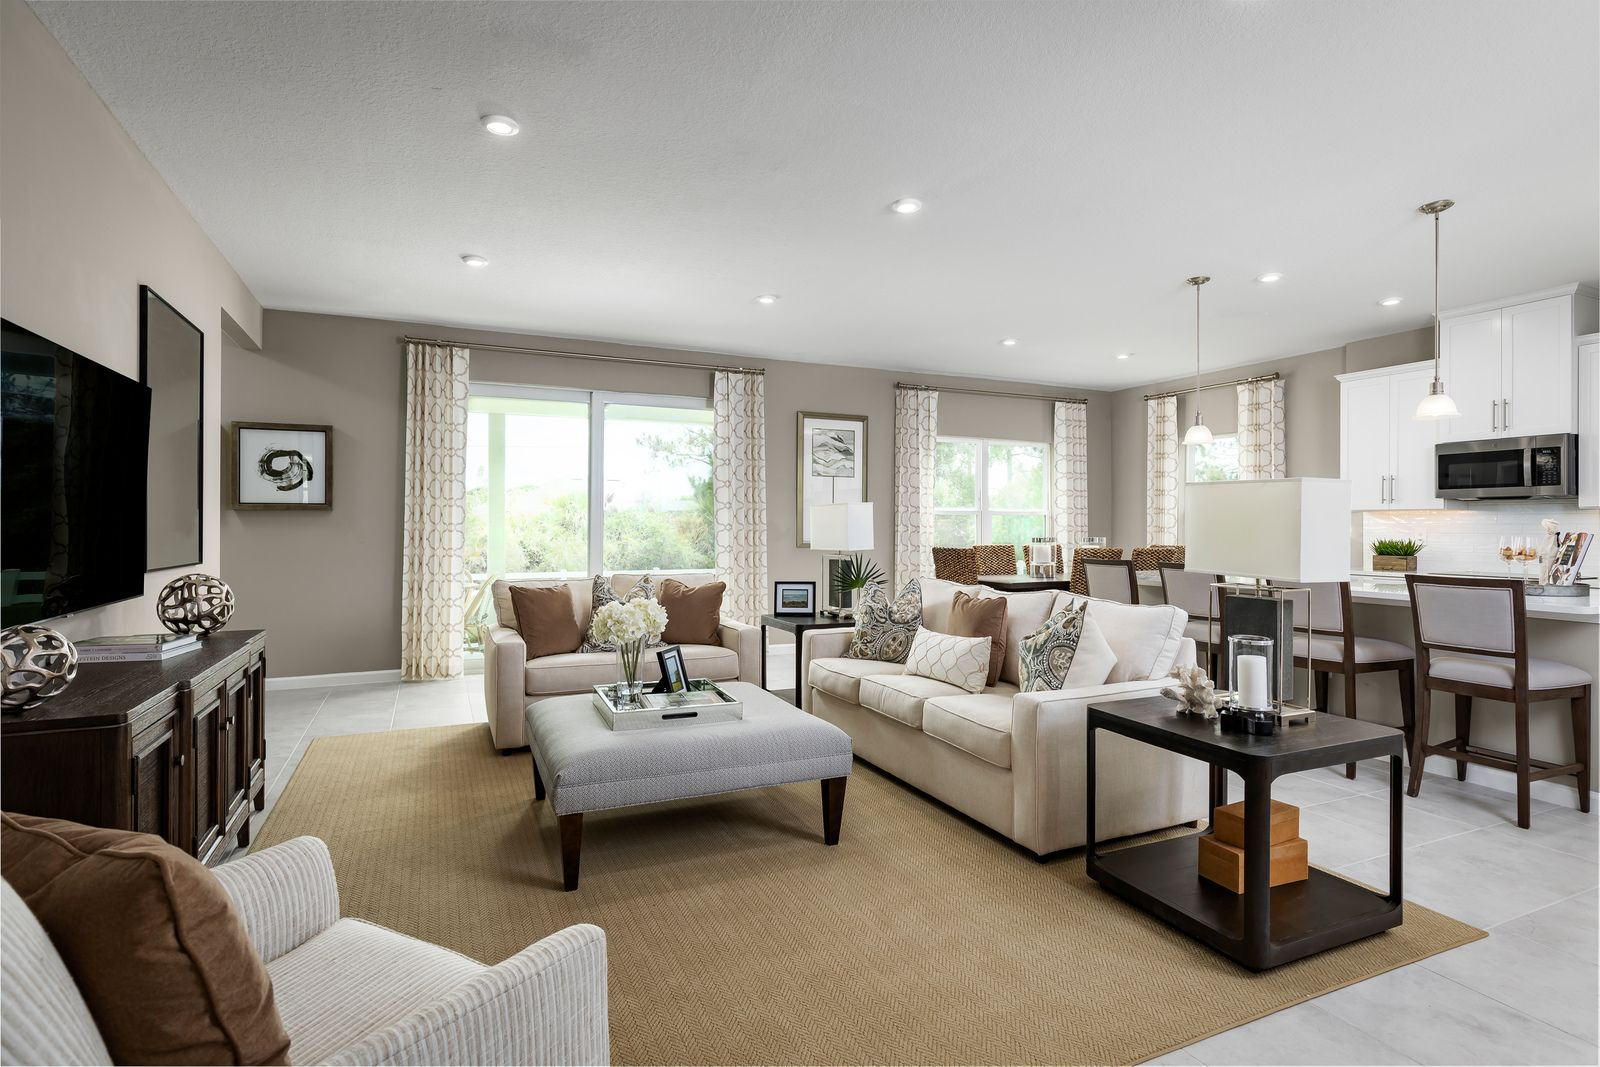 Living Area featured in the Peterson Cove By Ryan Homes in Indian River County, FL